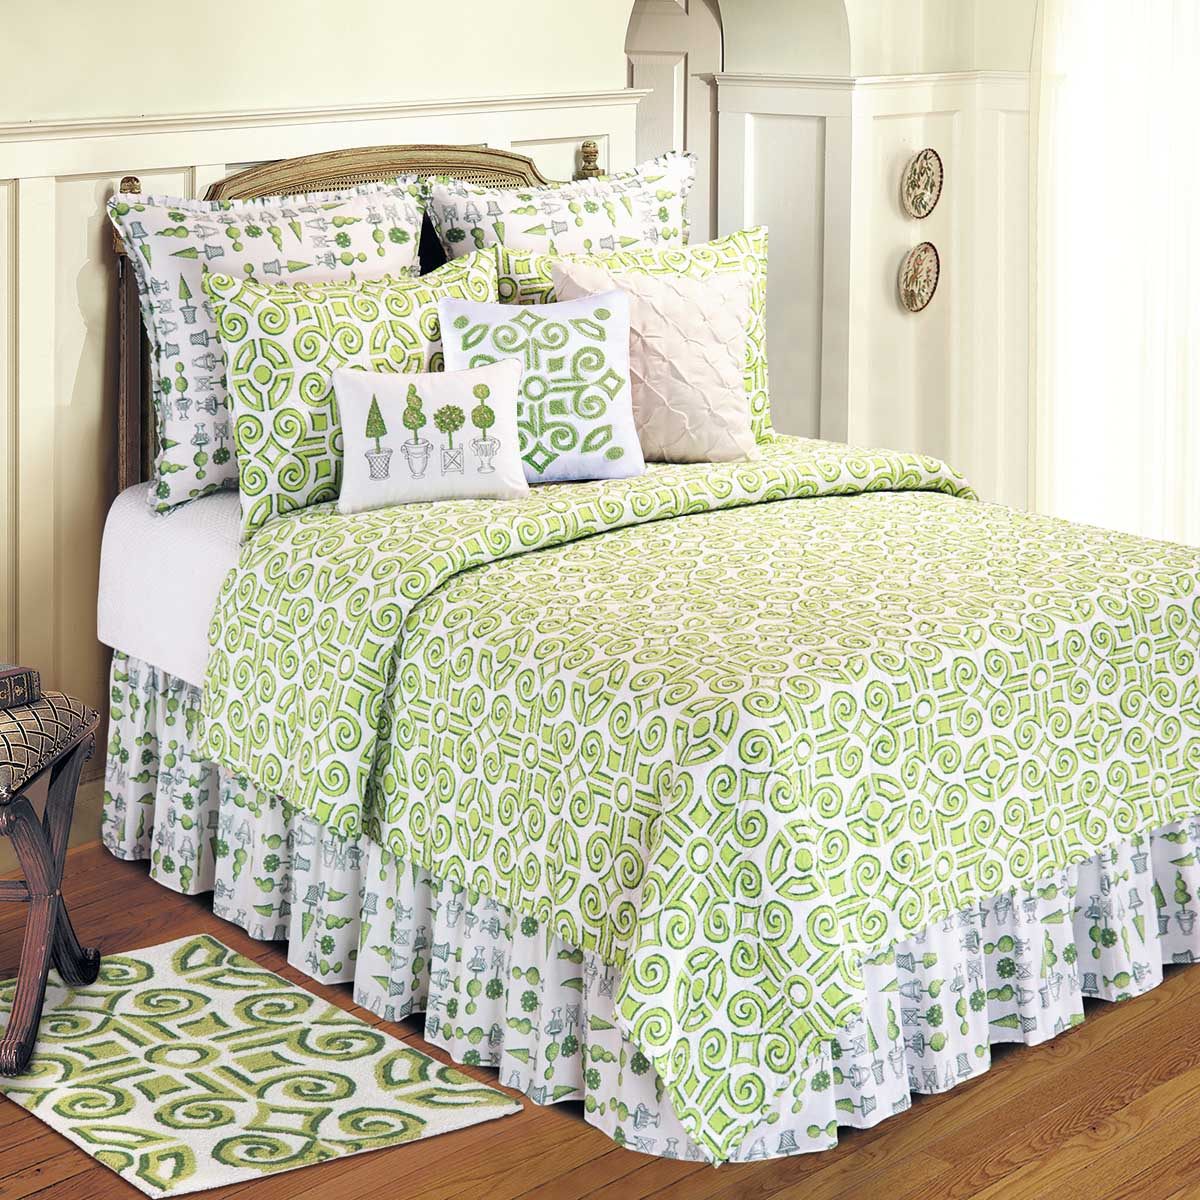 Carol's Attic_Bedding_Quilt.jpg